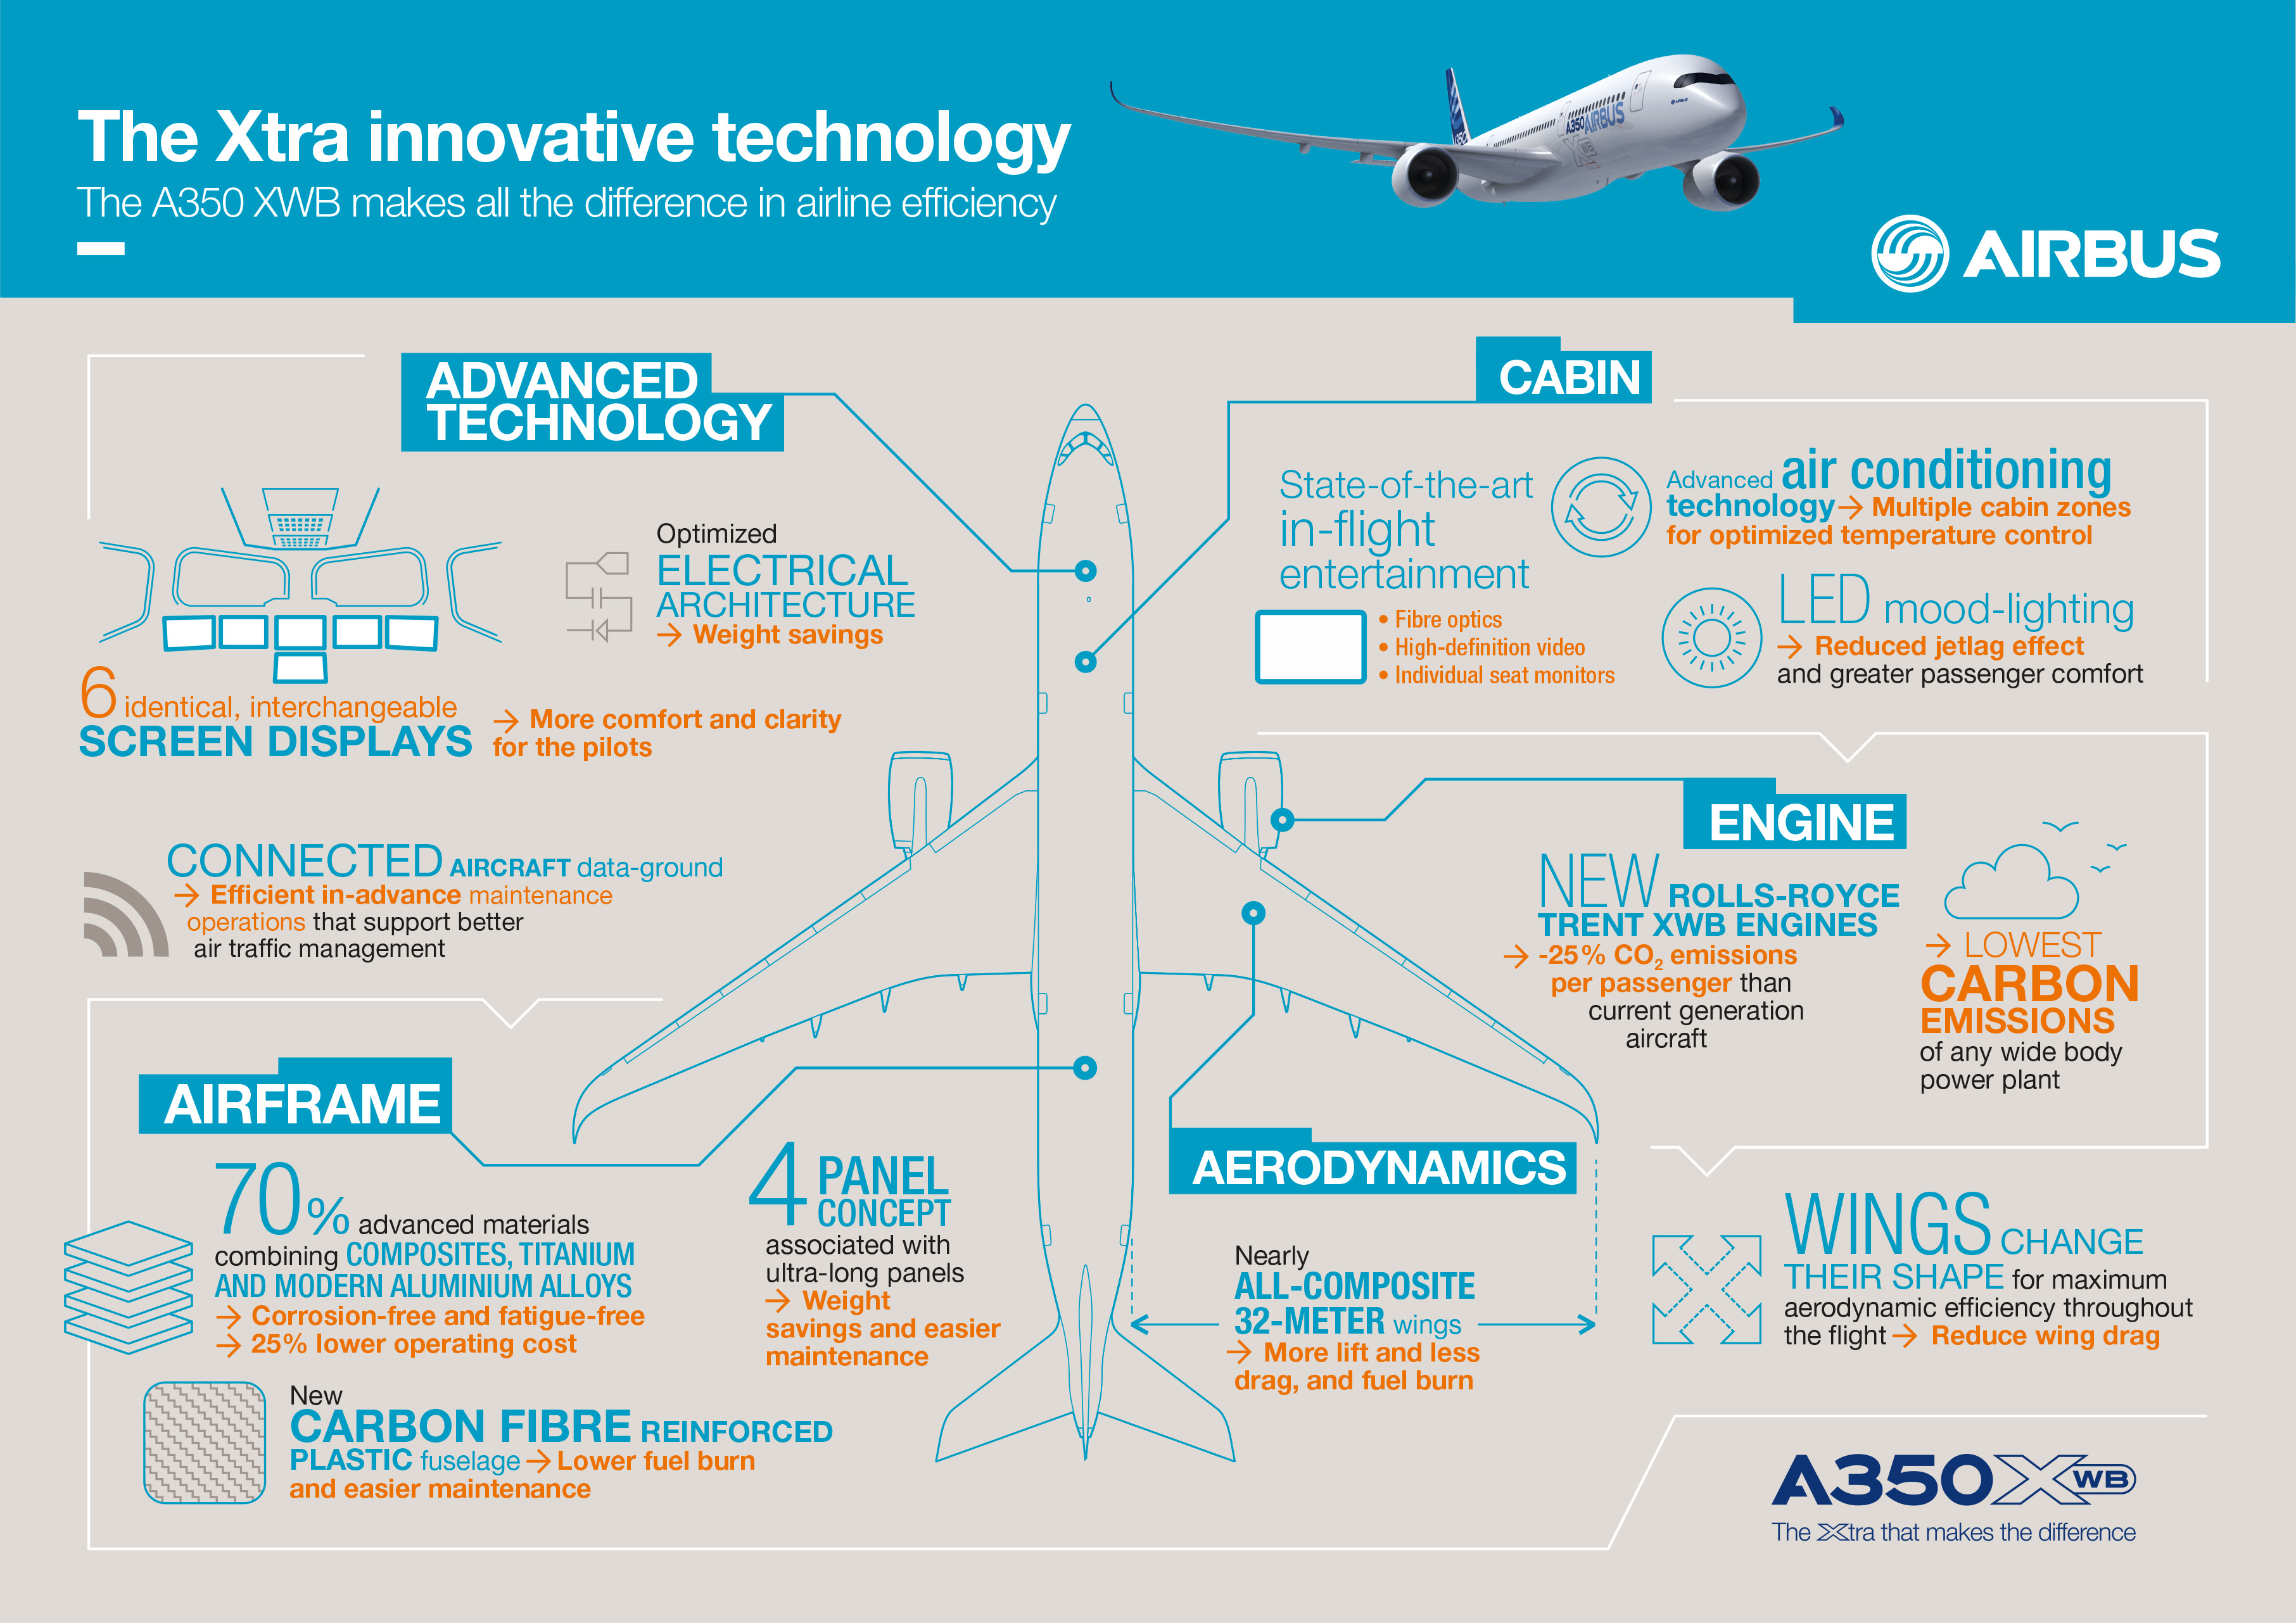 http://www.airlinereporter.com/wp-content/uploads/2014/12/A350_XWB_Infographic.jpg